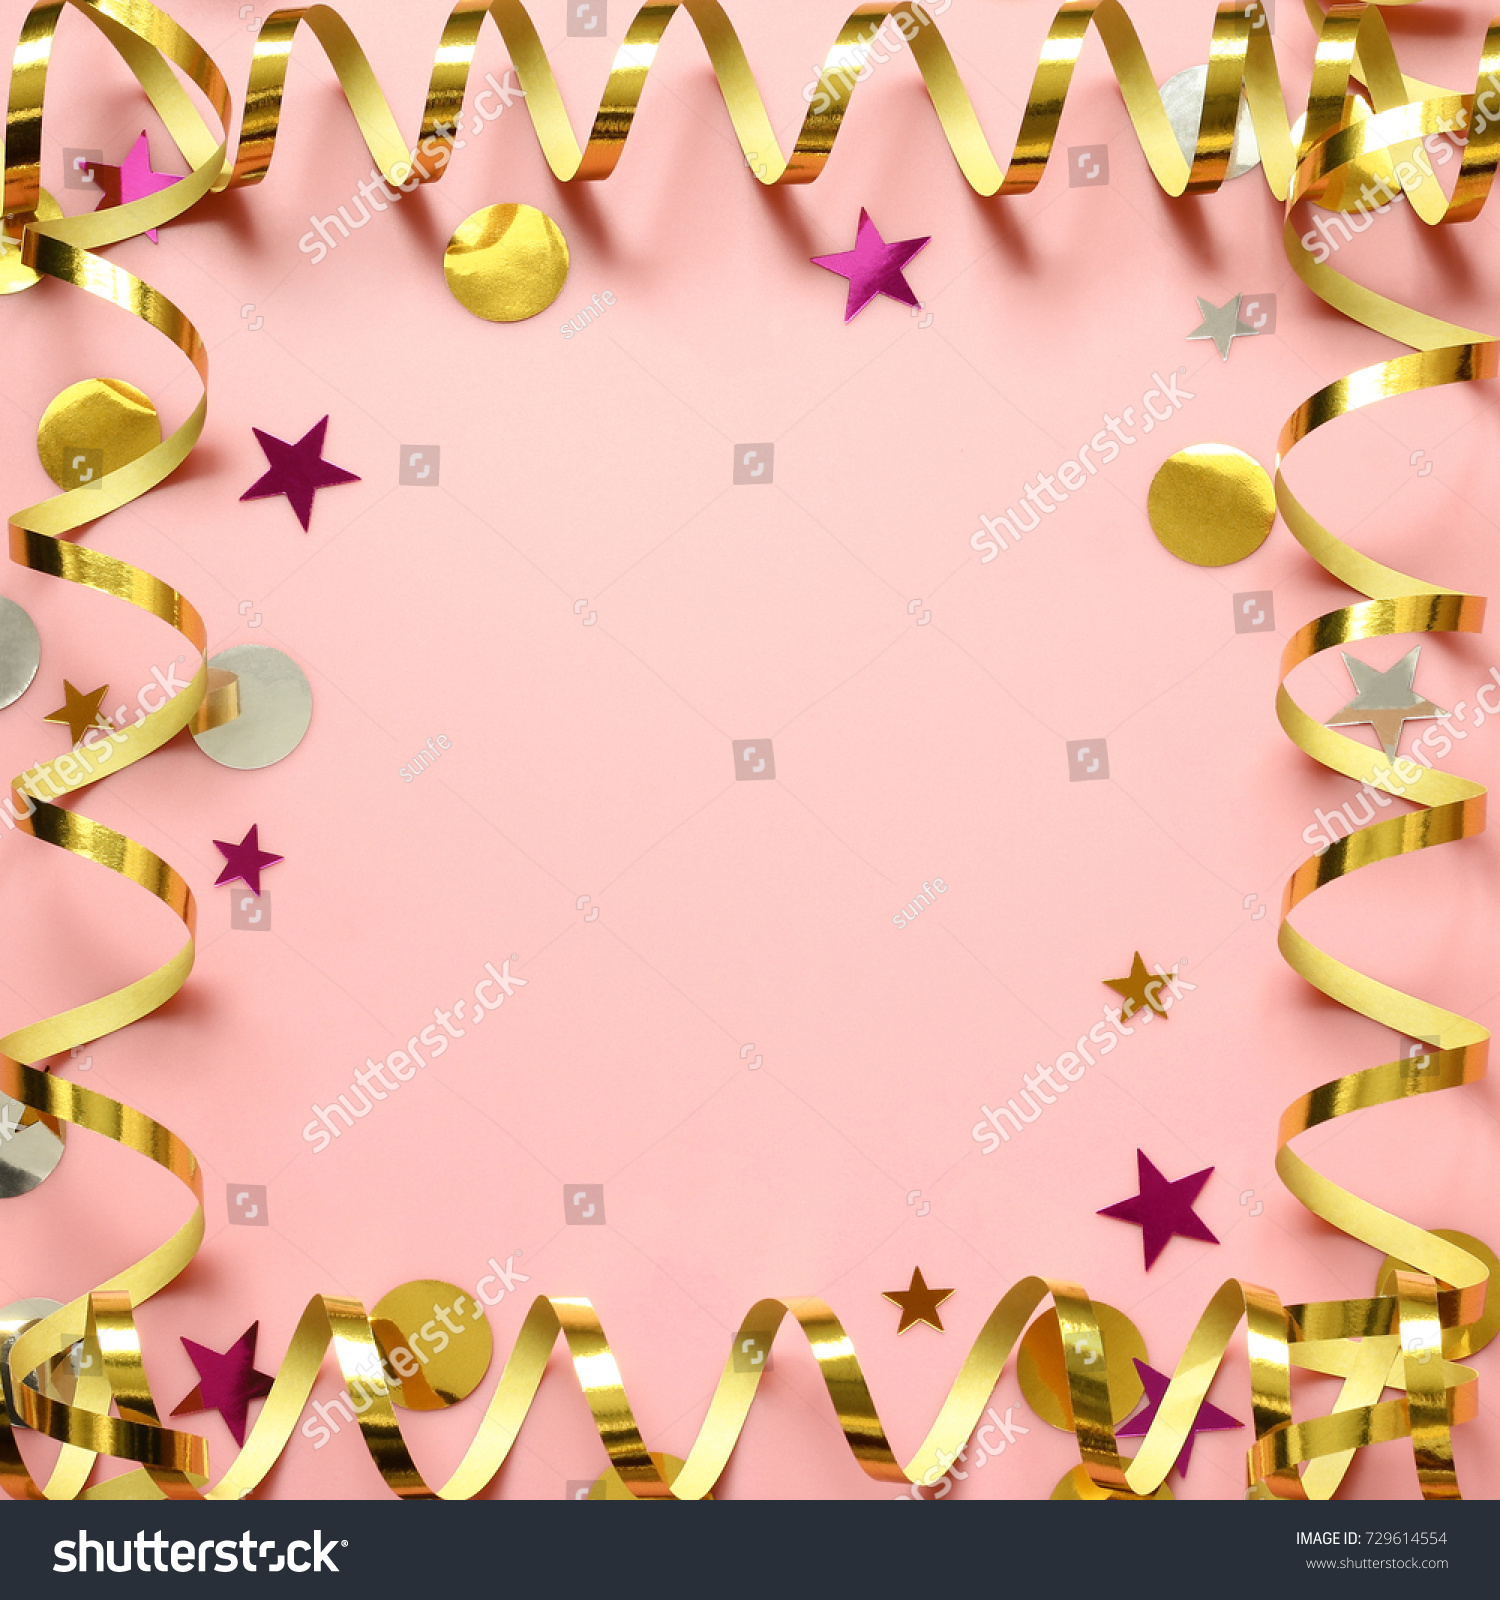 golden pink silver background with party decoration serpentine and confetti birthday